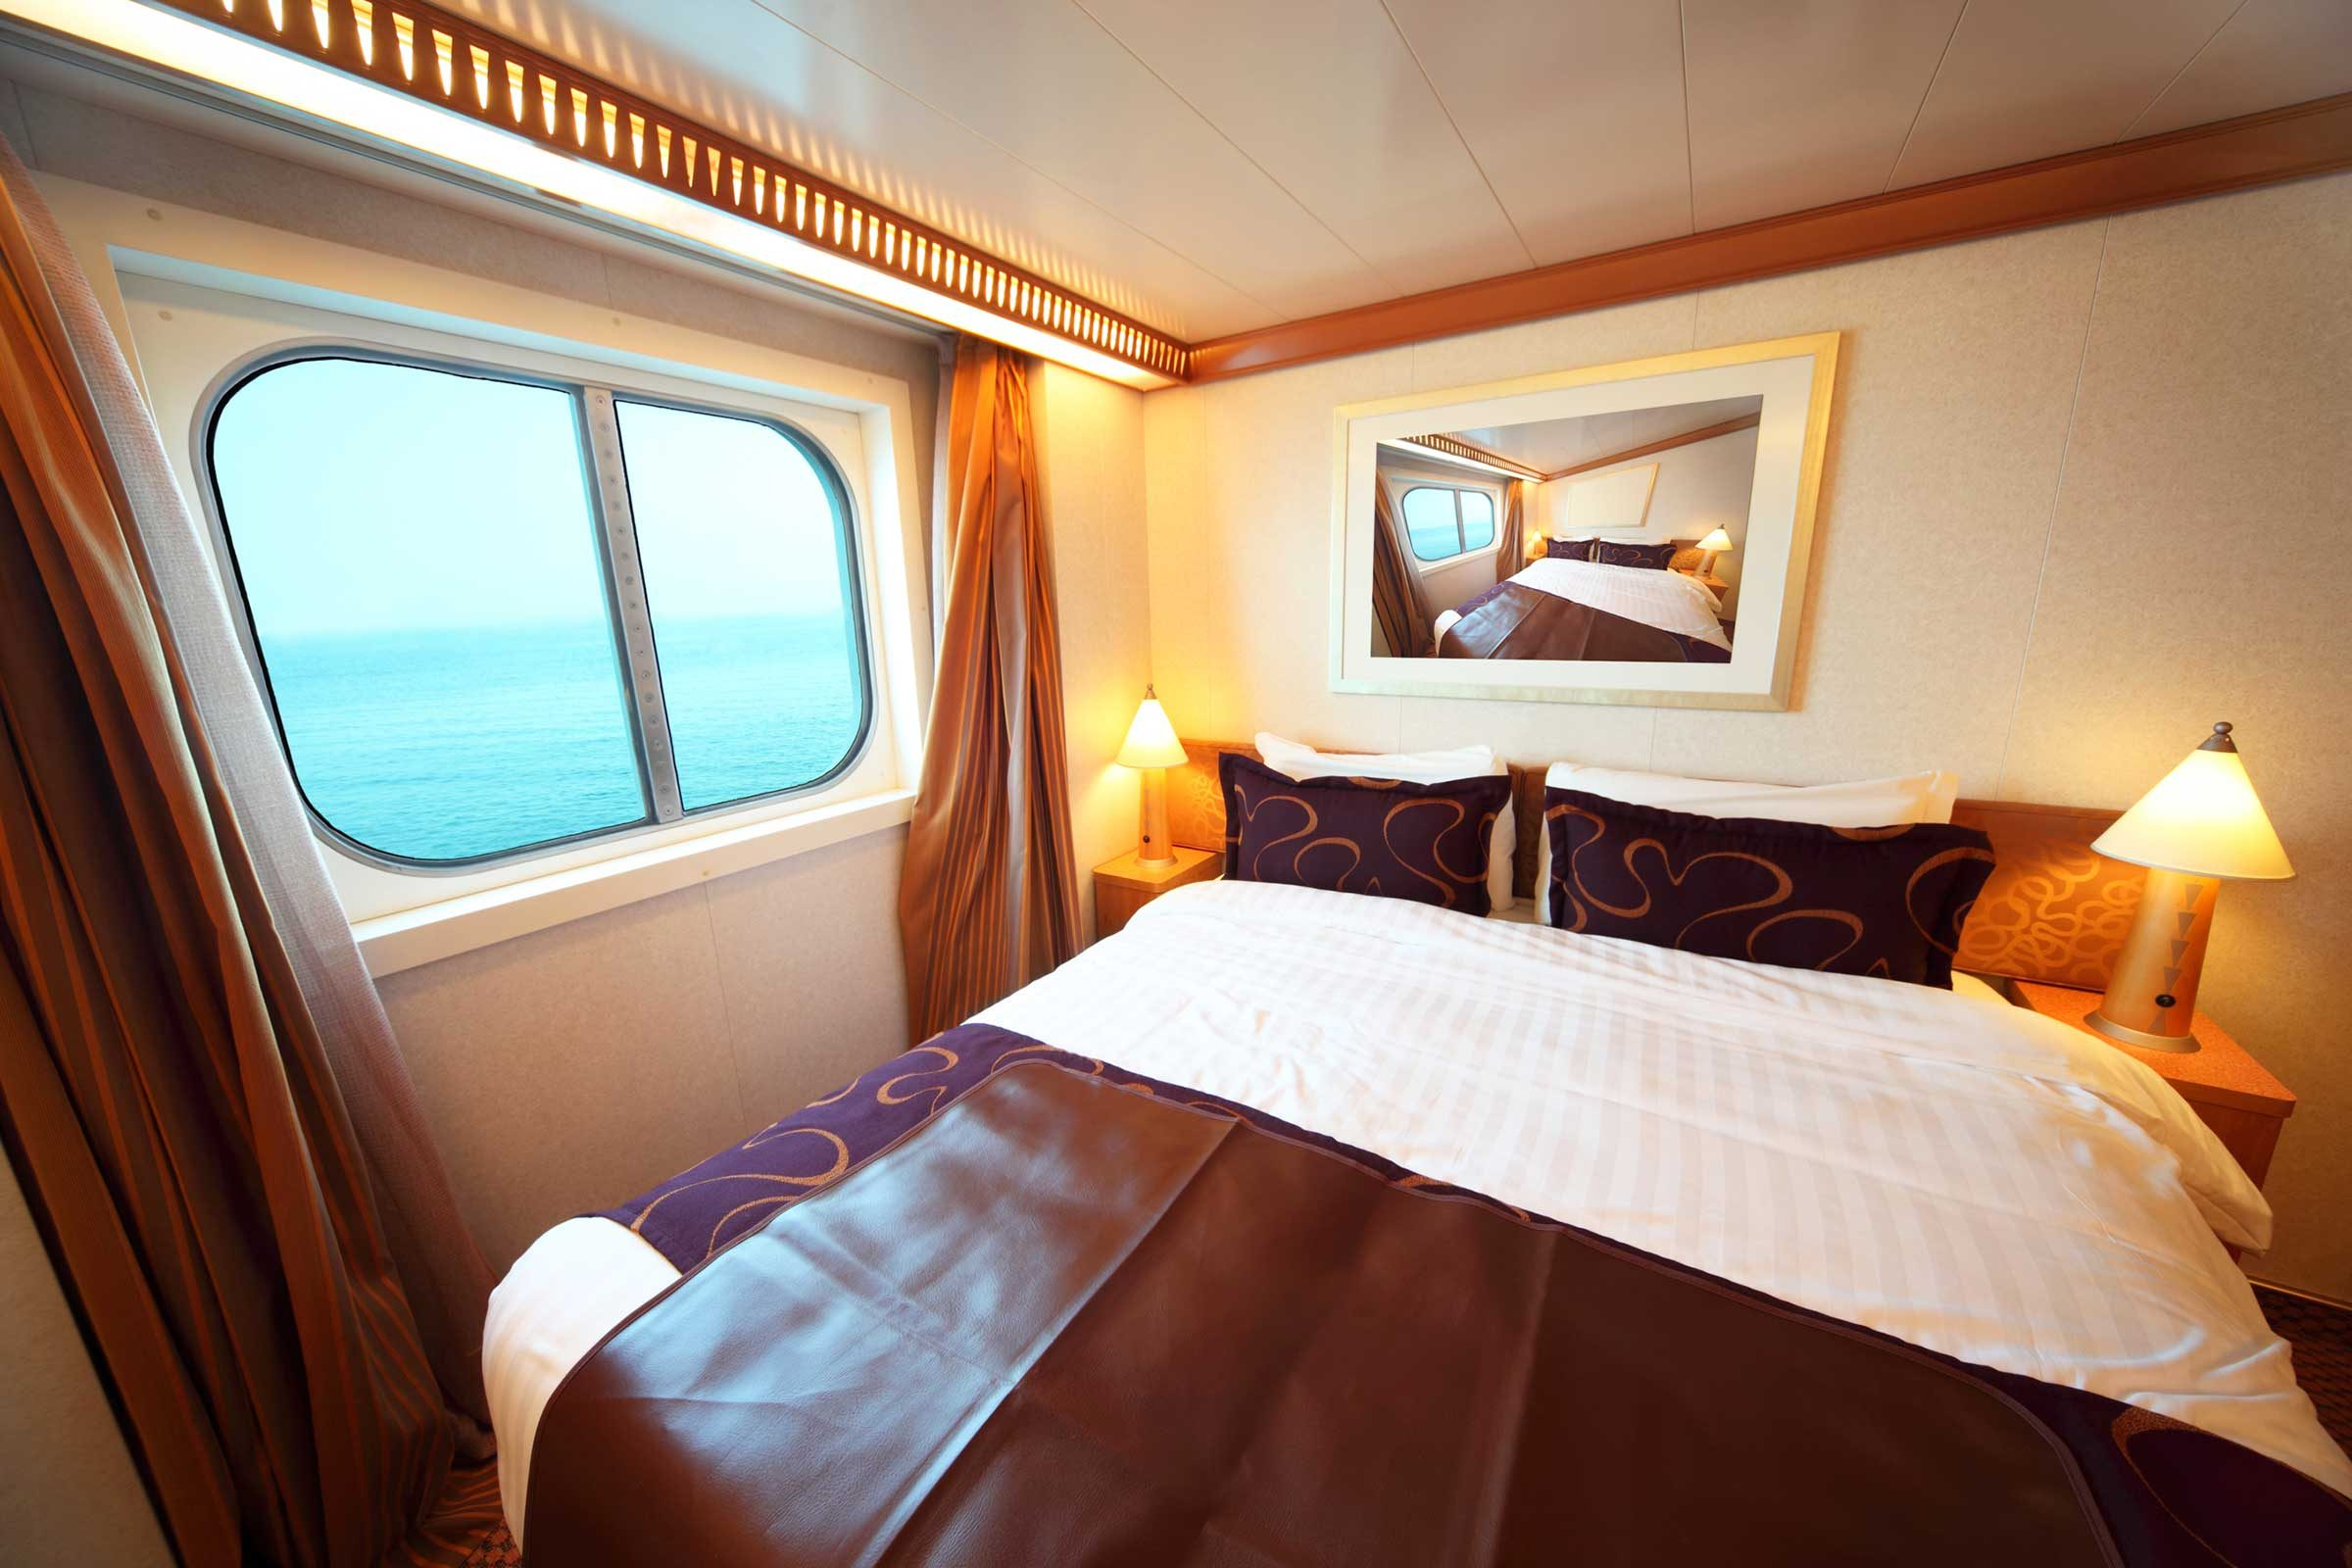 Cruise advice what cruise lines won 39 t tell you reader 39 s for Which cruise line has single cabins